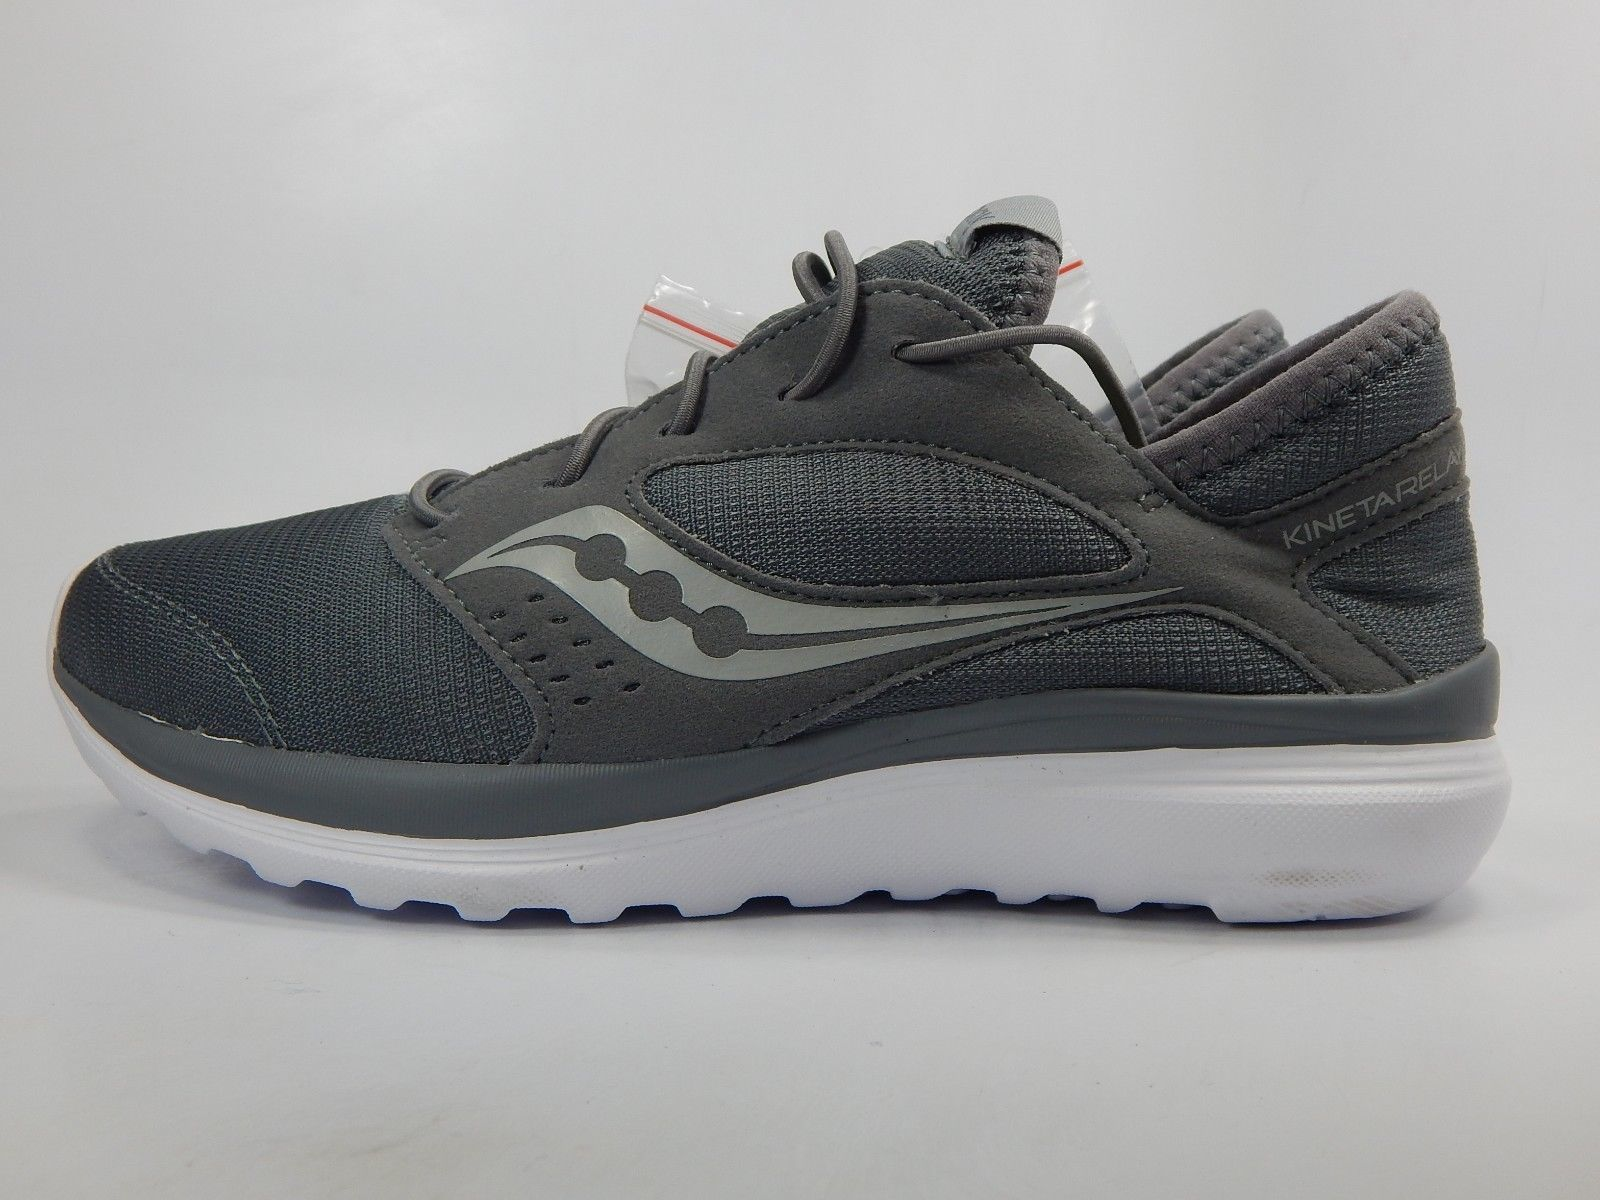 Saucony Kineta Relay Nylon Women's Running Shoes Size US 7 M (B) EU 38 S15244-49